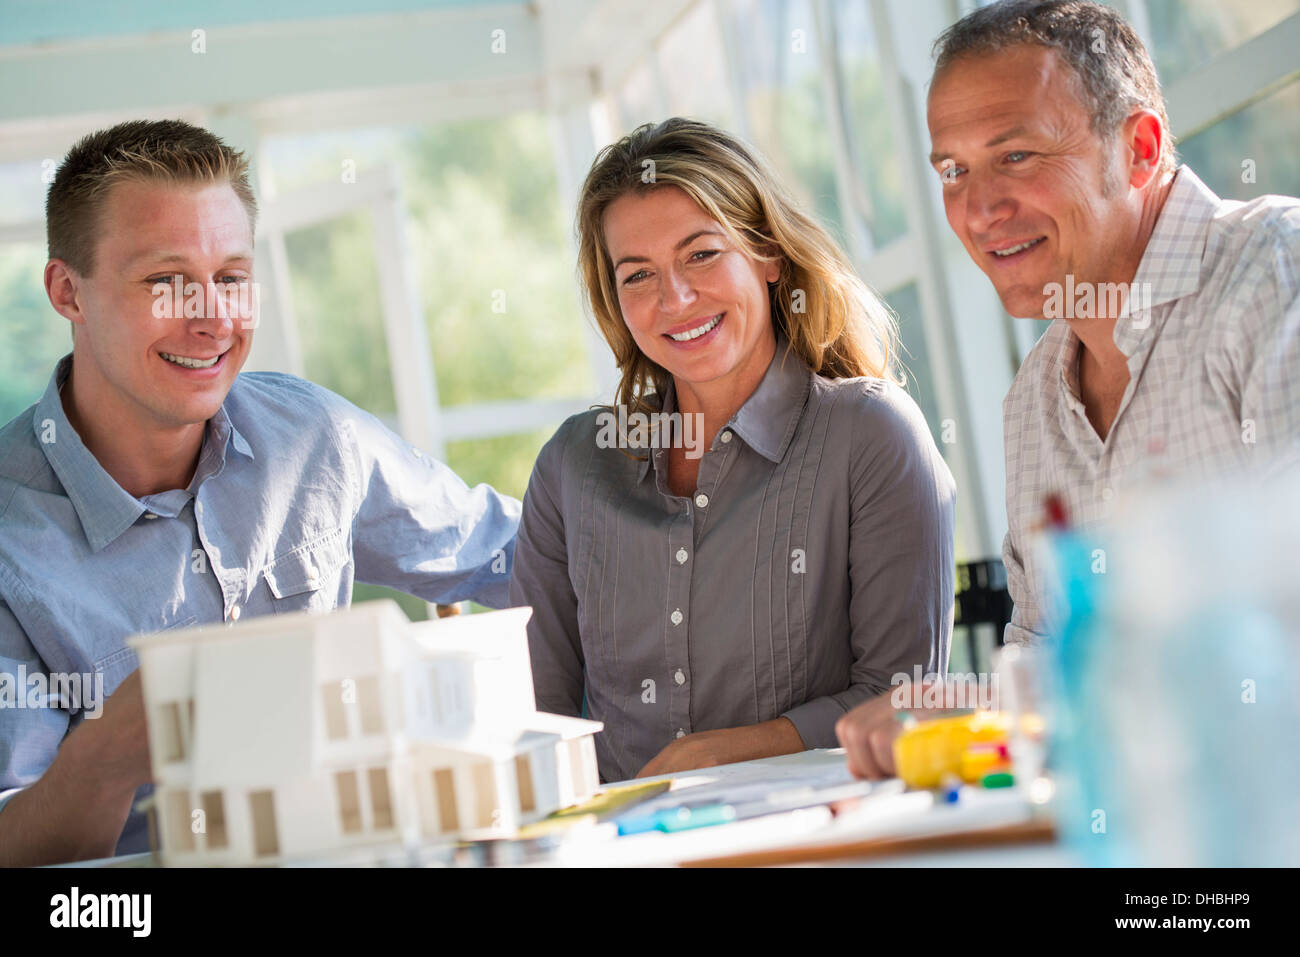 A farmhouse kitchen. A model of a house on the table. Planning and designing a house build. Three people. - Stock Image